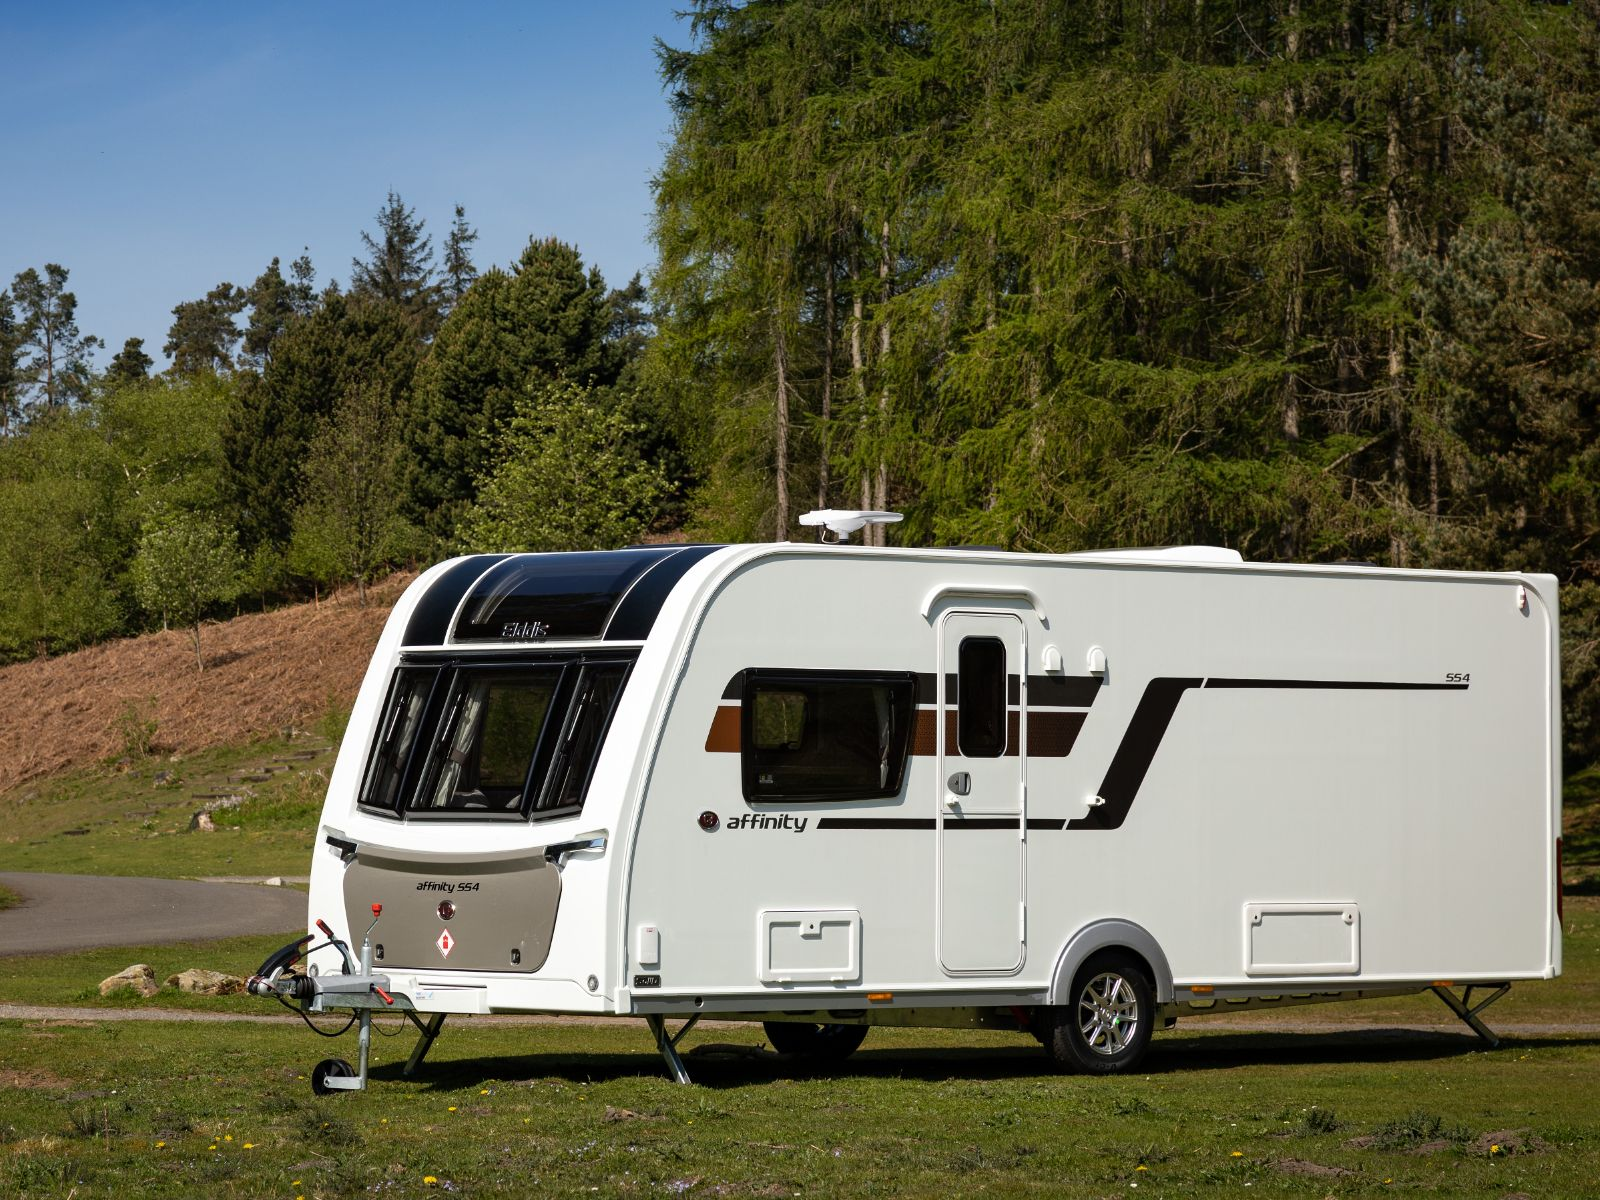 Affinity 554 Caravan parked in campsite with forest in background